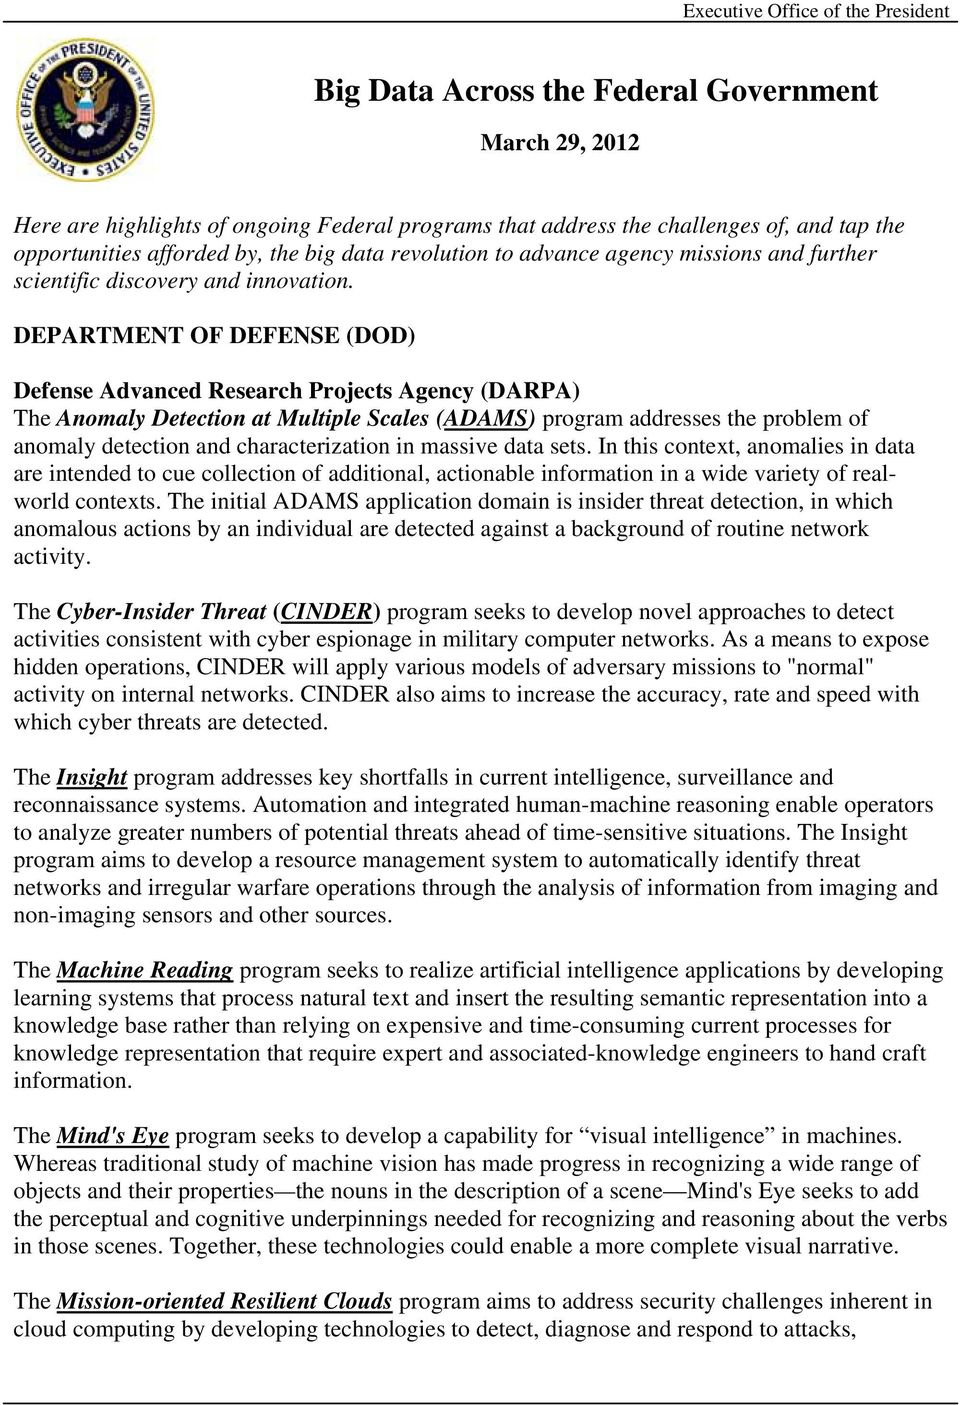 DEPARTMENT OF DEFENSE (DOD) Defense Advanced Research Projects Agency (DARPA) The Anomaly Detection at Multiple Scales (ADAMS) program addresses the problem of anomaly detection and characterization